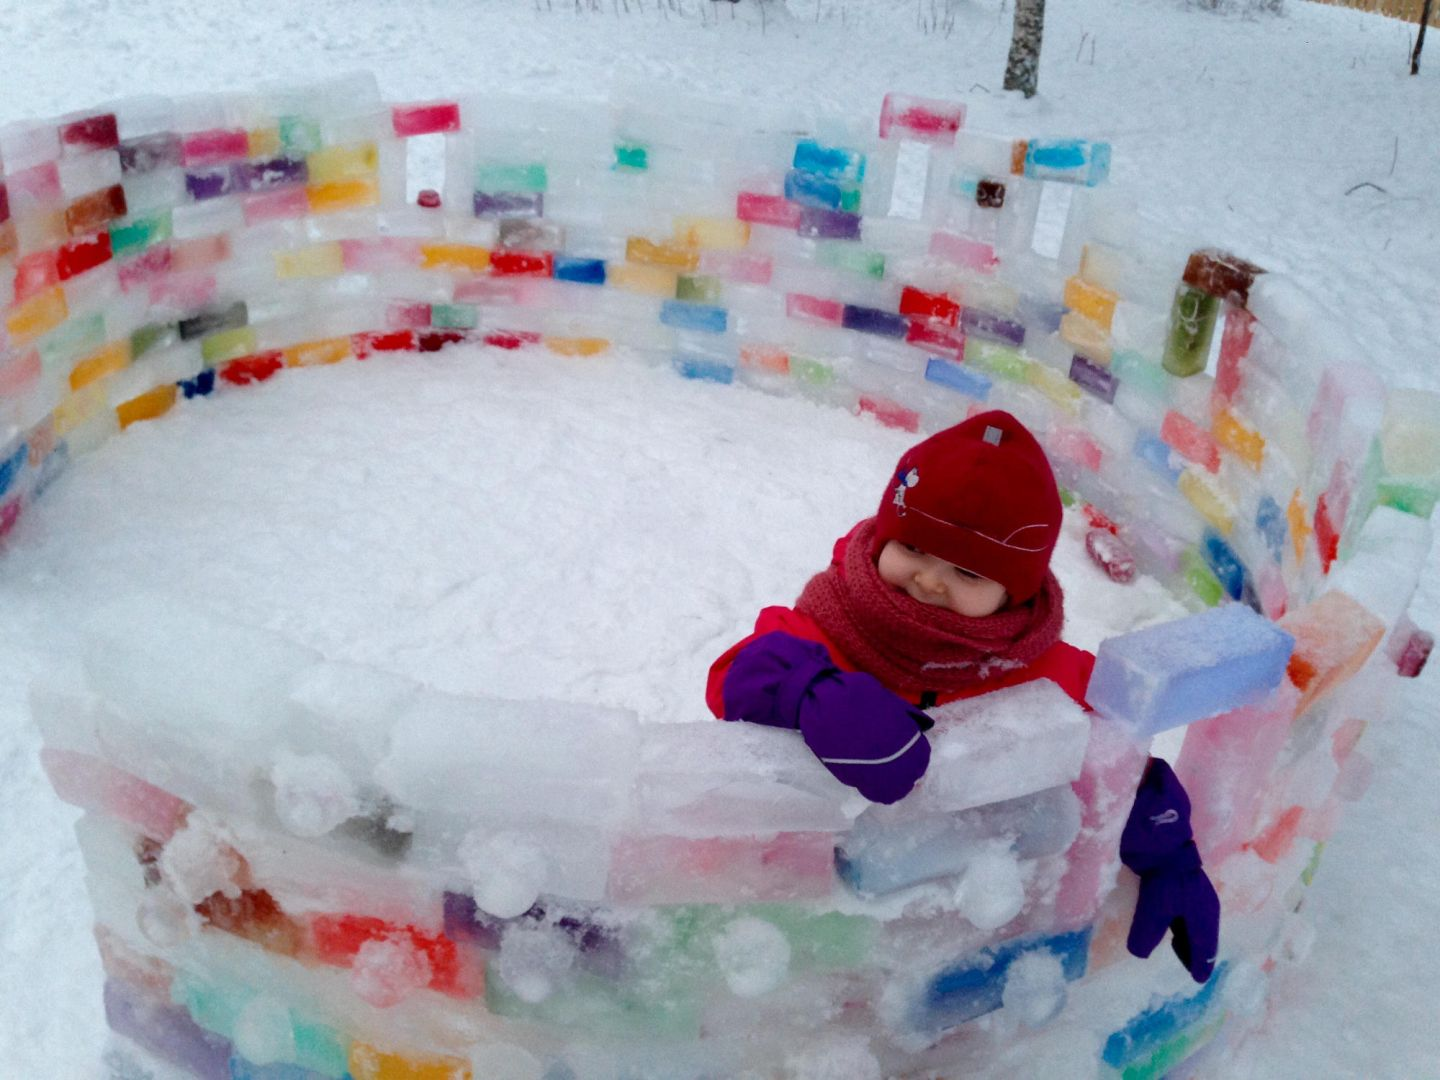 Color igloo made from colored ice